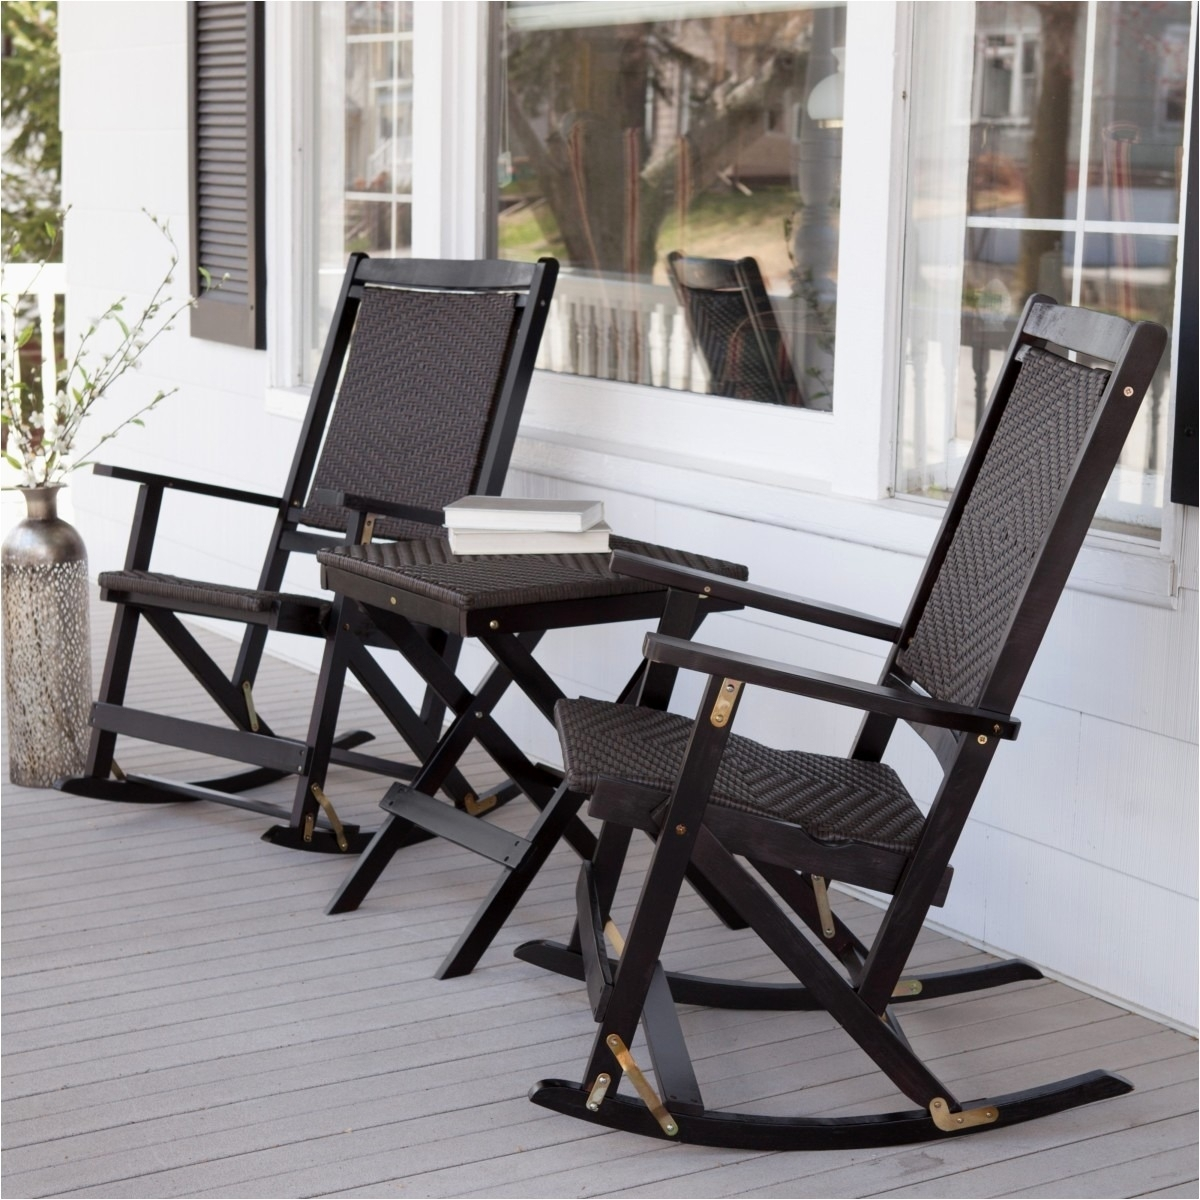 Resin Outdoor Rocking Chairs Lovely Patio Chairs Plastic Muskoka Throughout Outdoor Rocking Chairs With Table (#9 of 15)